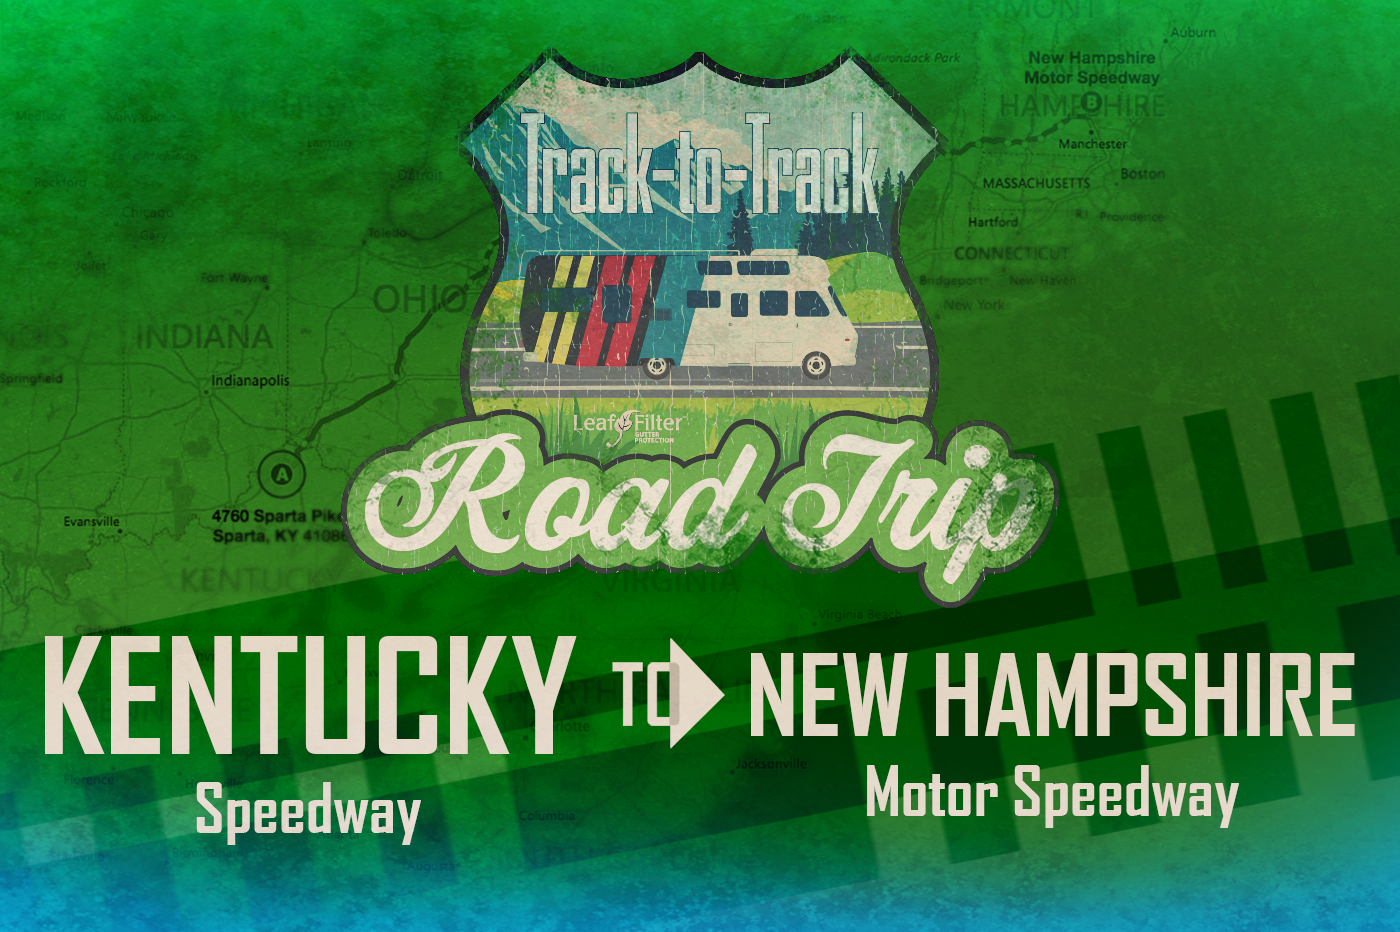 Kentucky Speedway to New Hampshire Speedway road trip